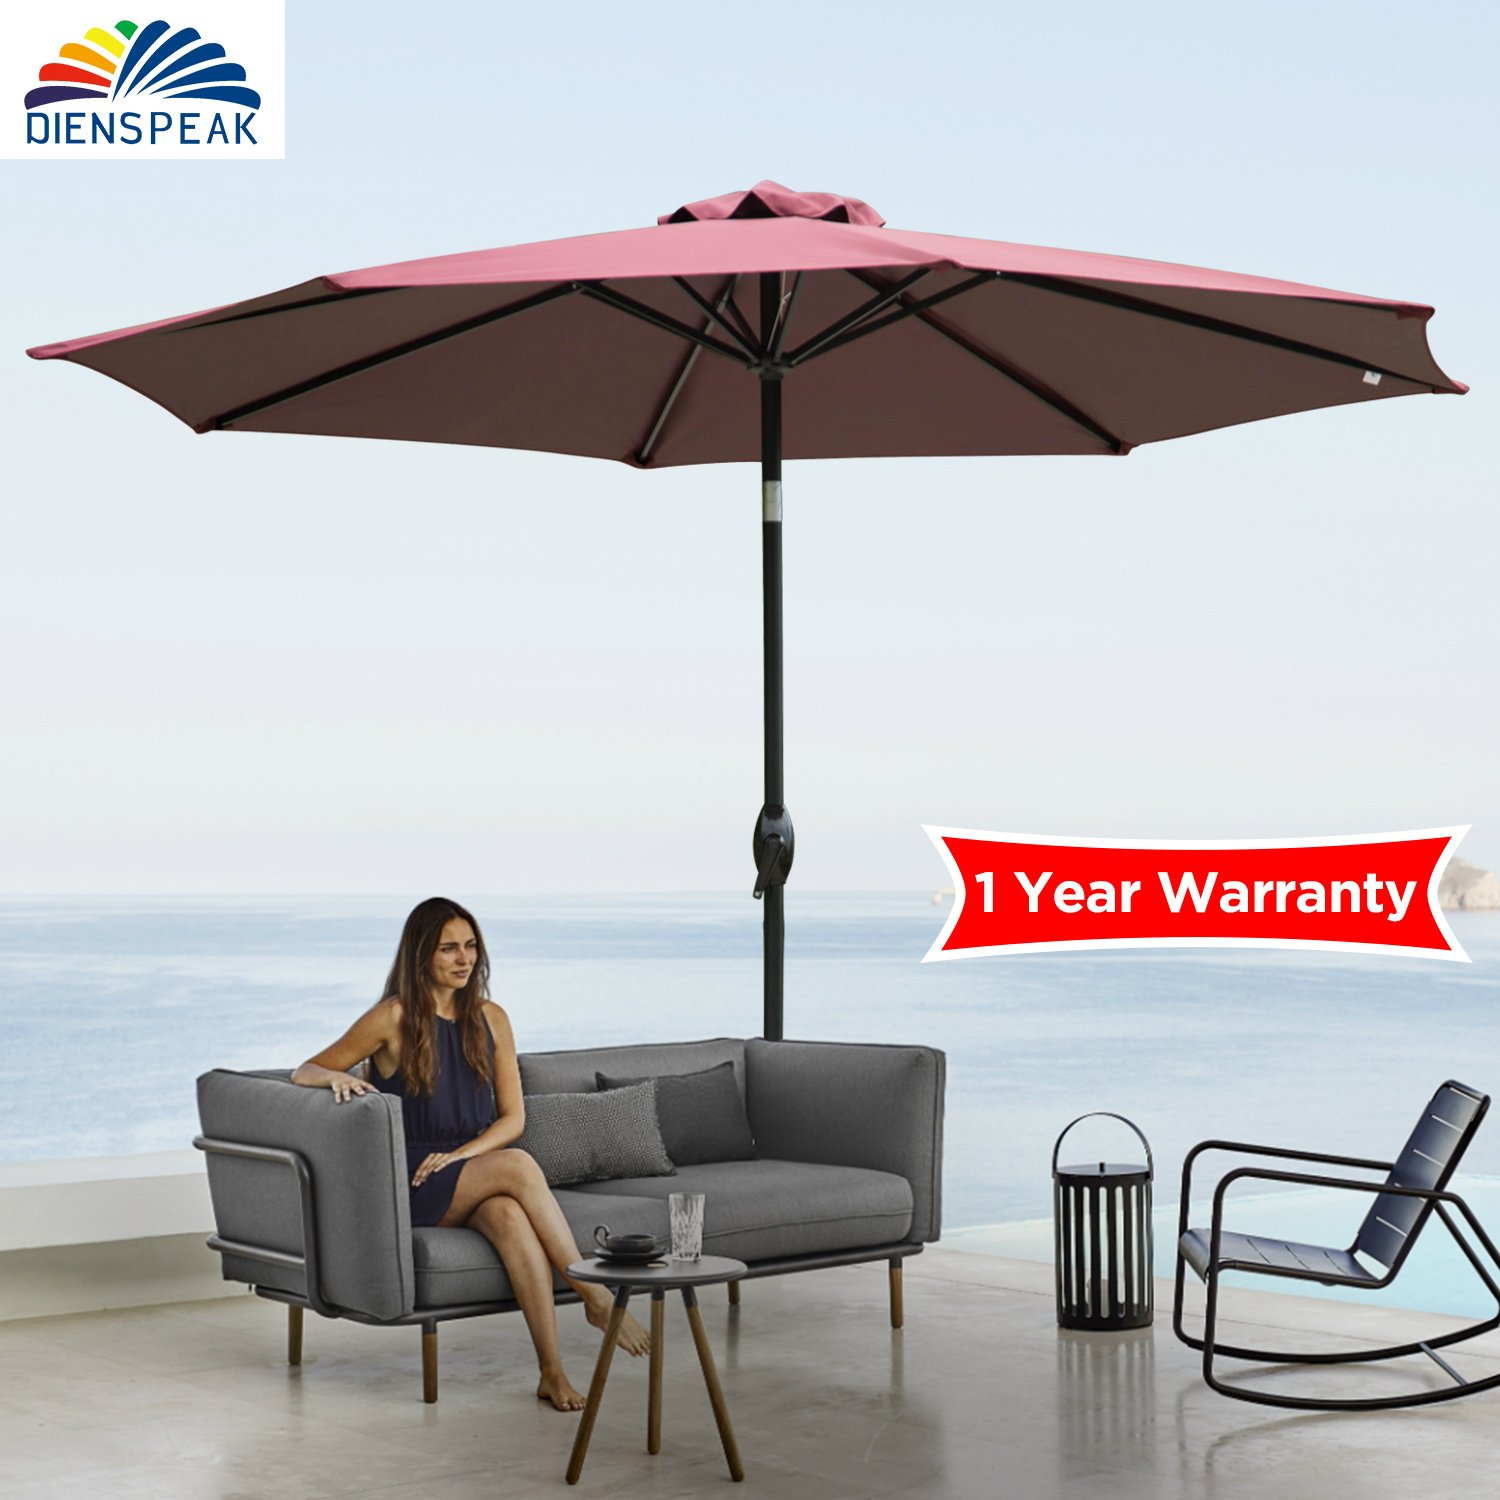 Dienspeak Deluxe 9' Market Outdoor Aluminum Table Patio Beach Umbrella Sunshade 1000 Hours Fade-Resistant with Push Button Tilt and Crank, 250g/sqm Spun Polyester,8 Steel Ribs (burgenty/red)